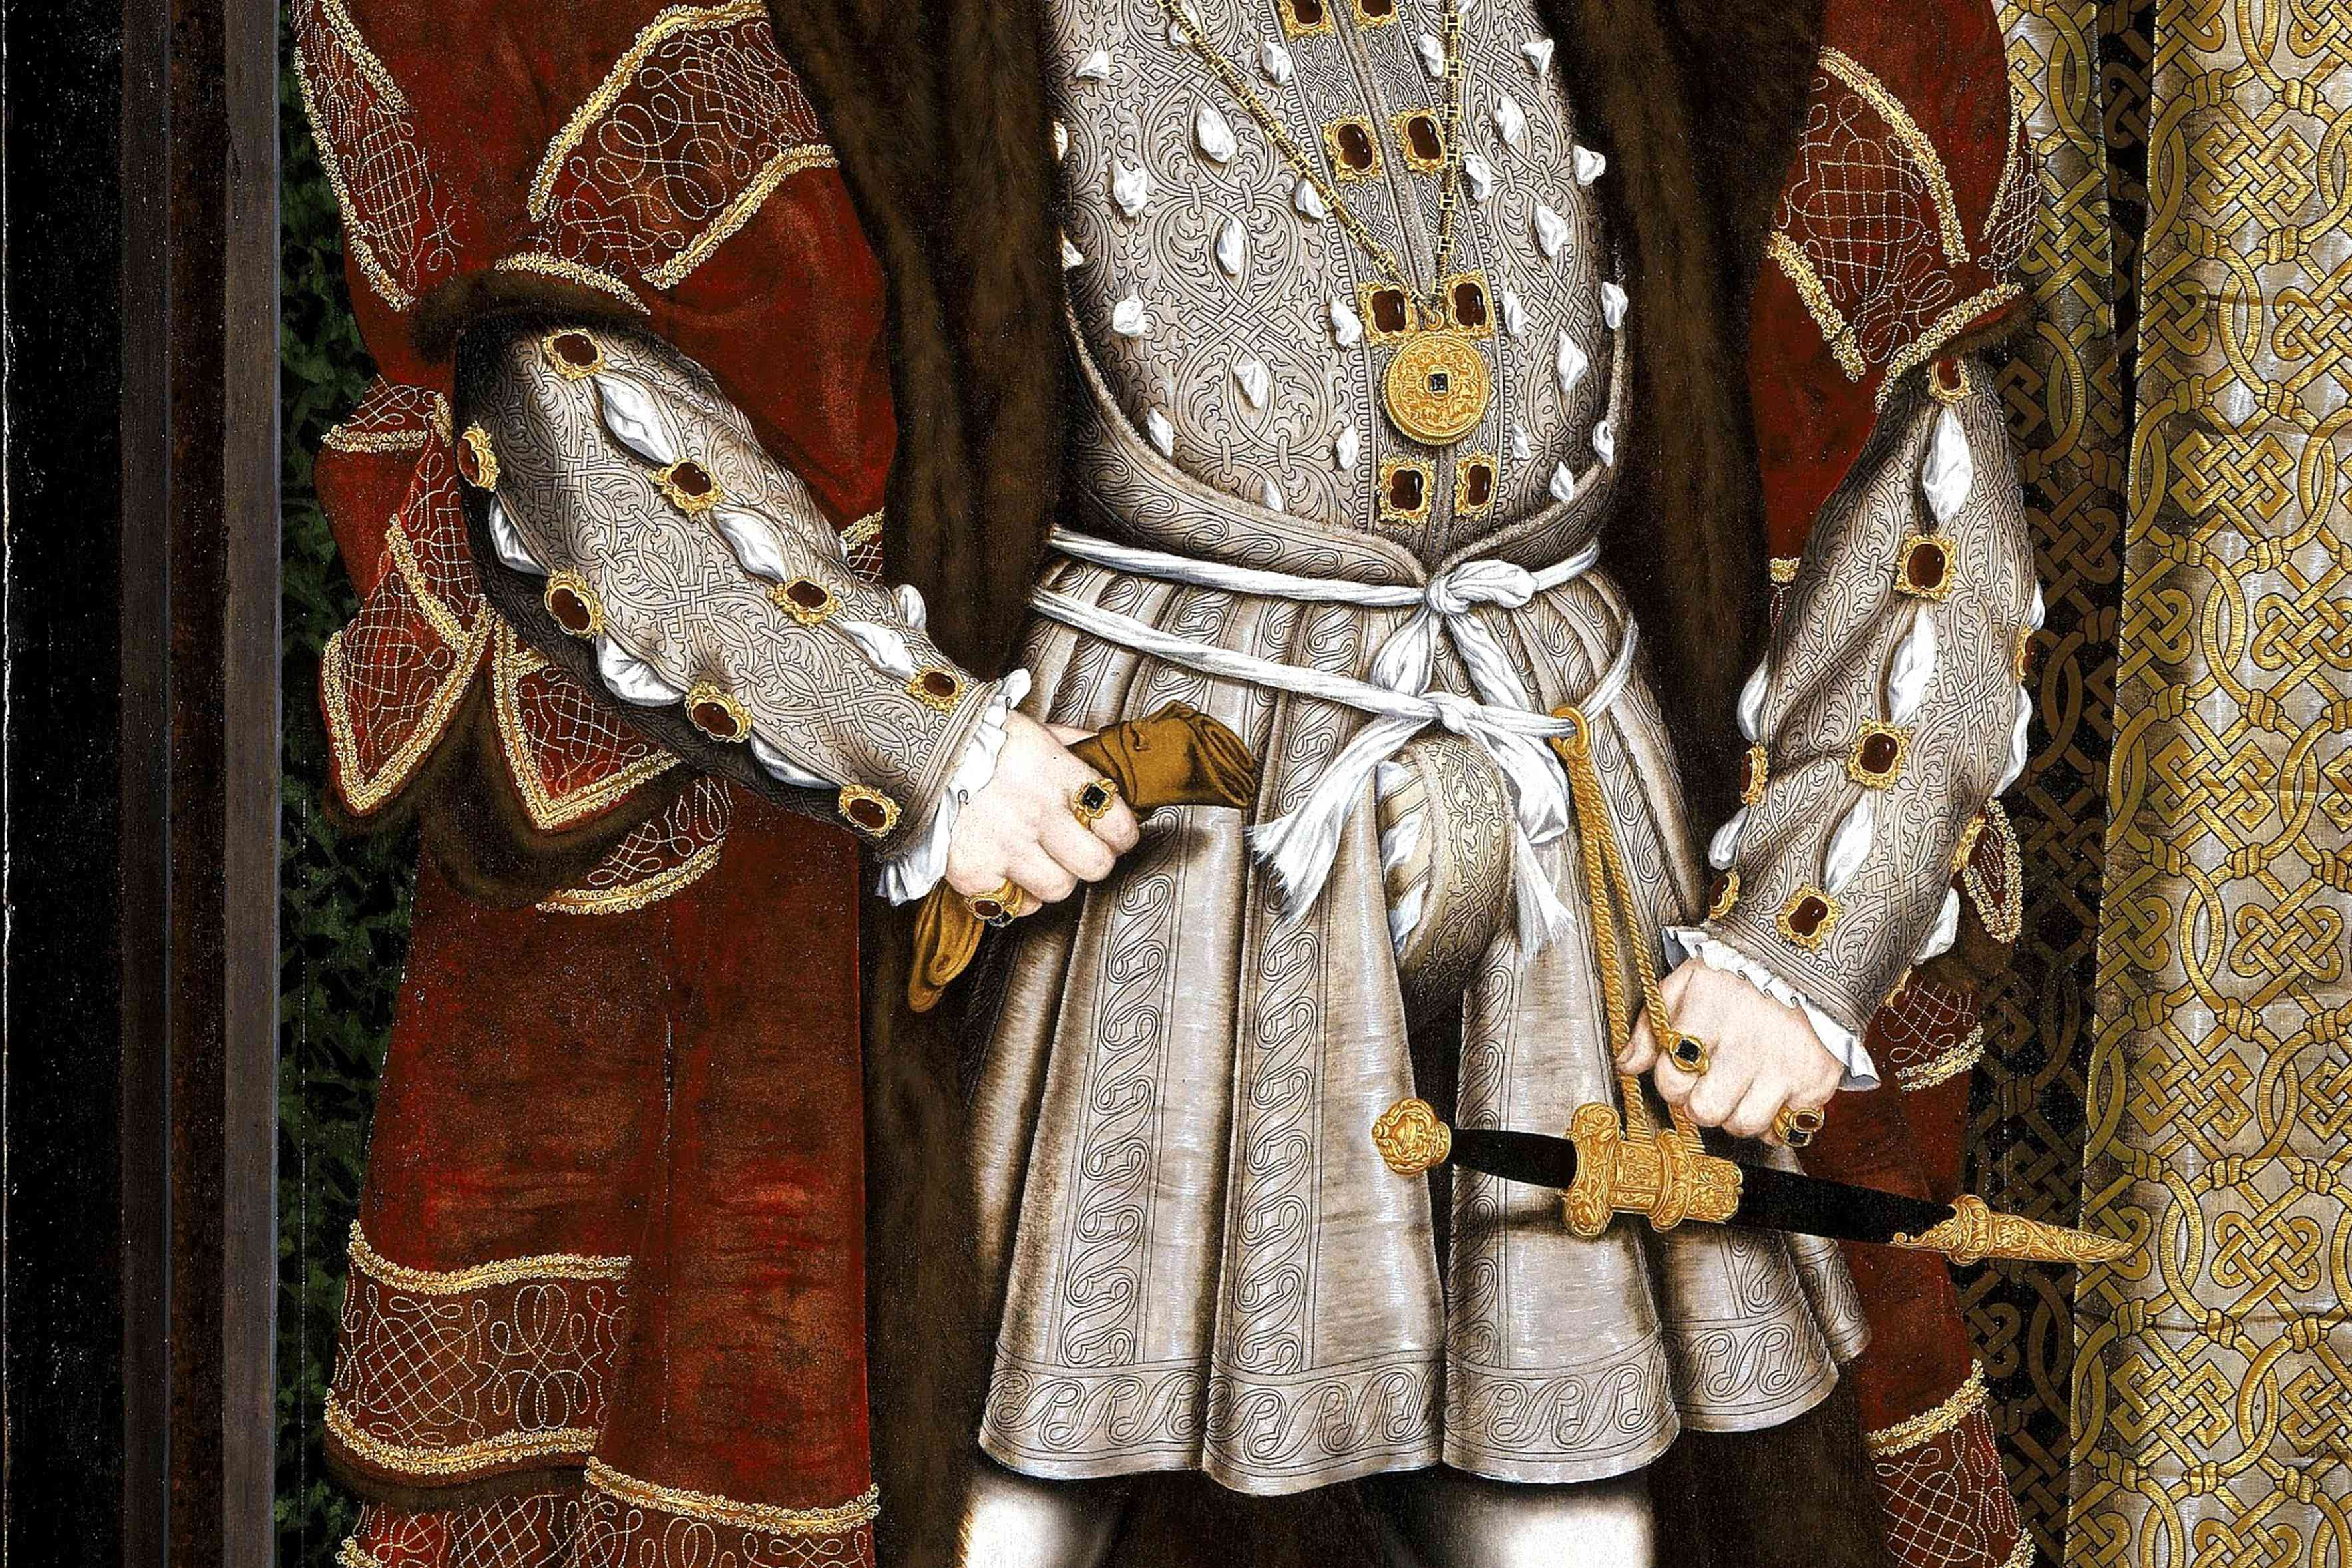 Henry VIII's notorious codpiece